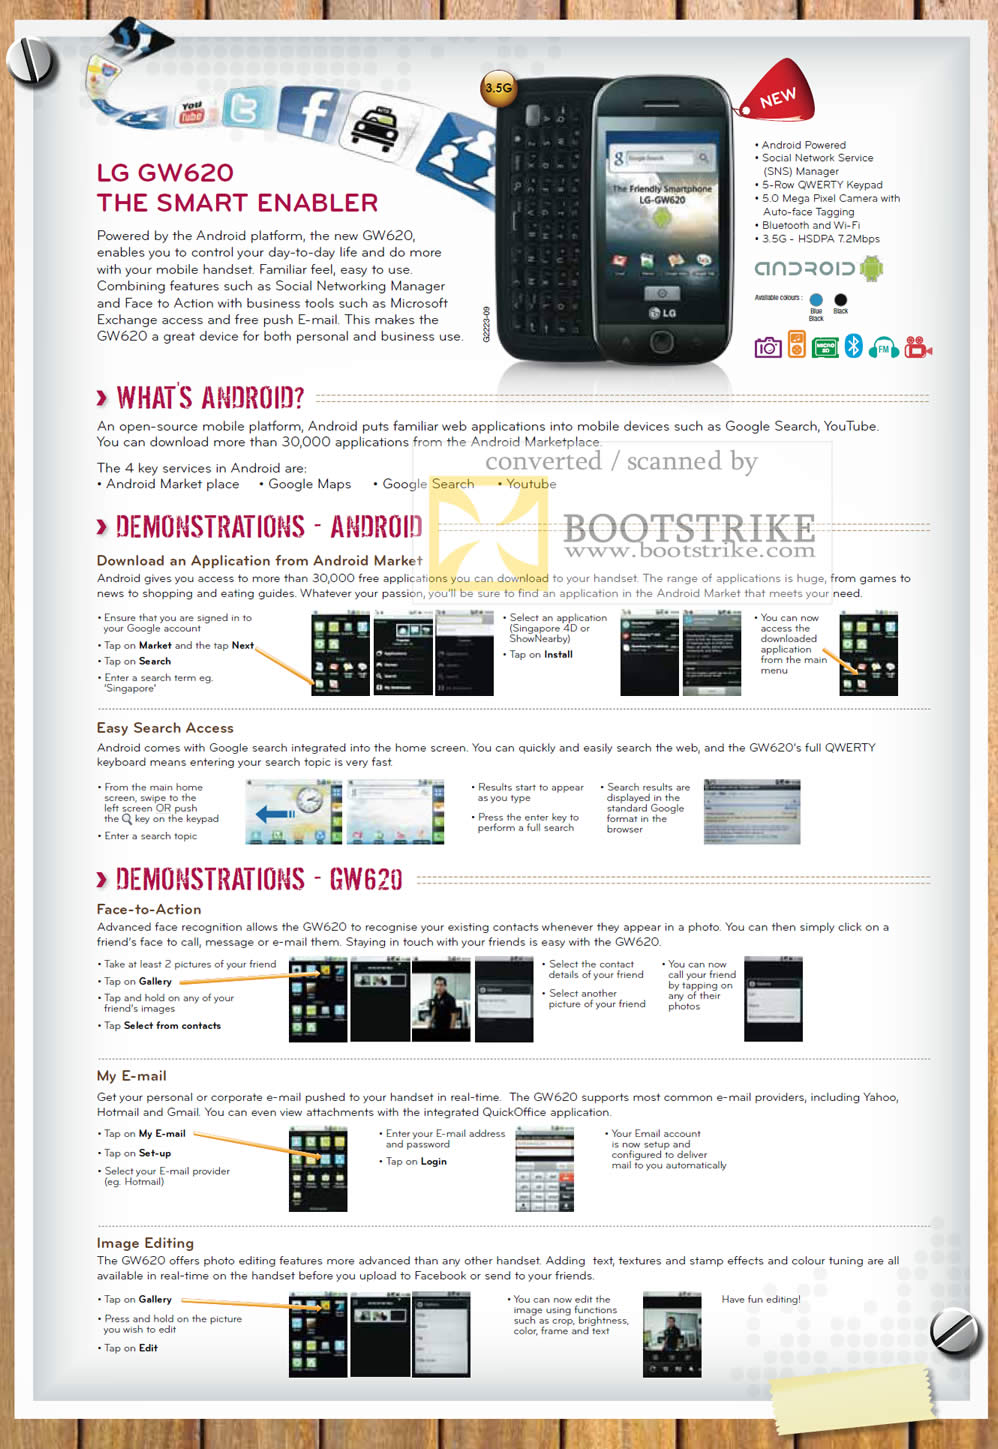 PC Show 2010 price list image brochure of LG GW620 Mobile Phone Google Android